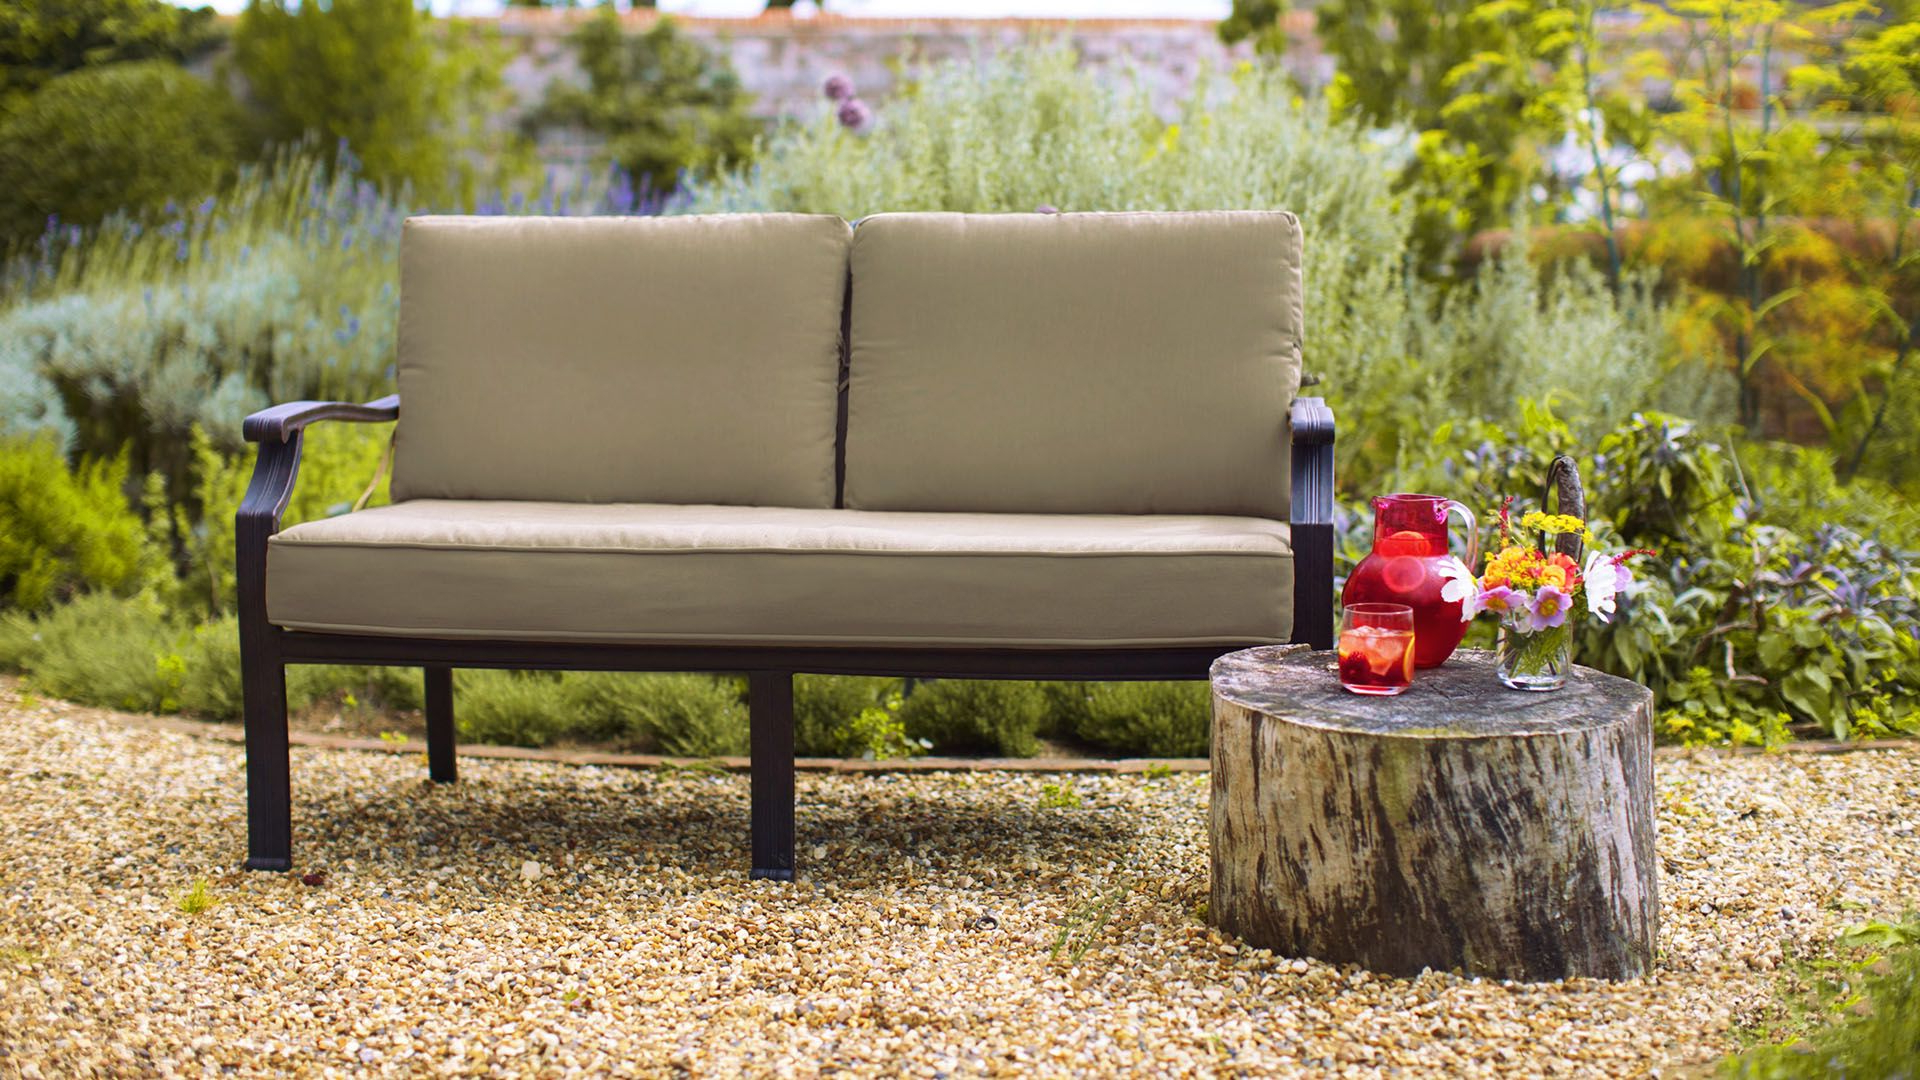 Most Recently Released Prospect Hill Wicker Settee Benches With Regard To Jamie Oliver Bench – Jamie Oliver – Cast Aluminium Garden (View 8 of 20)